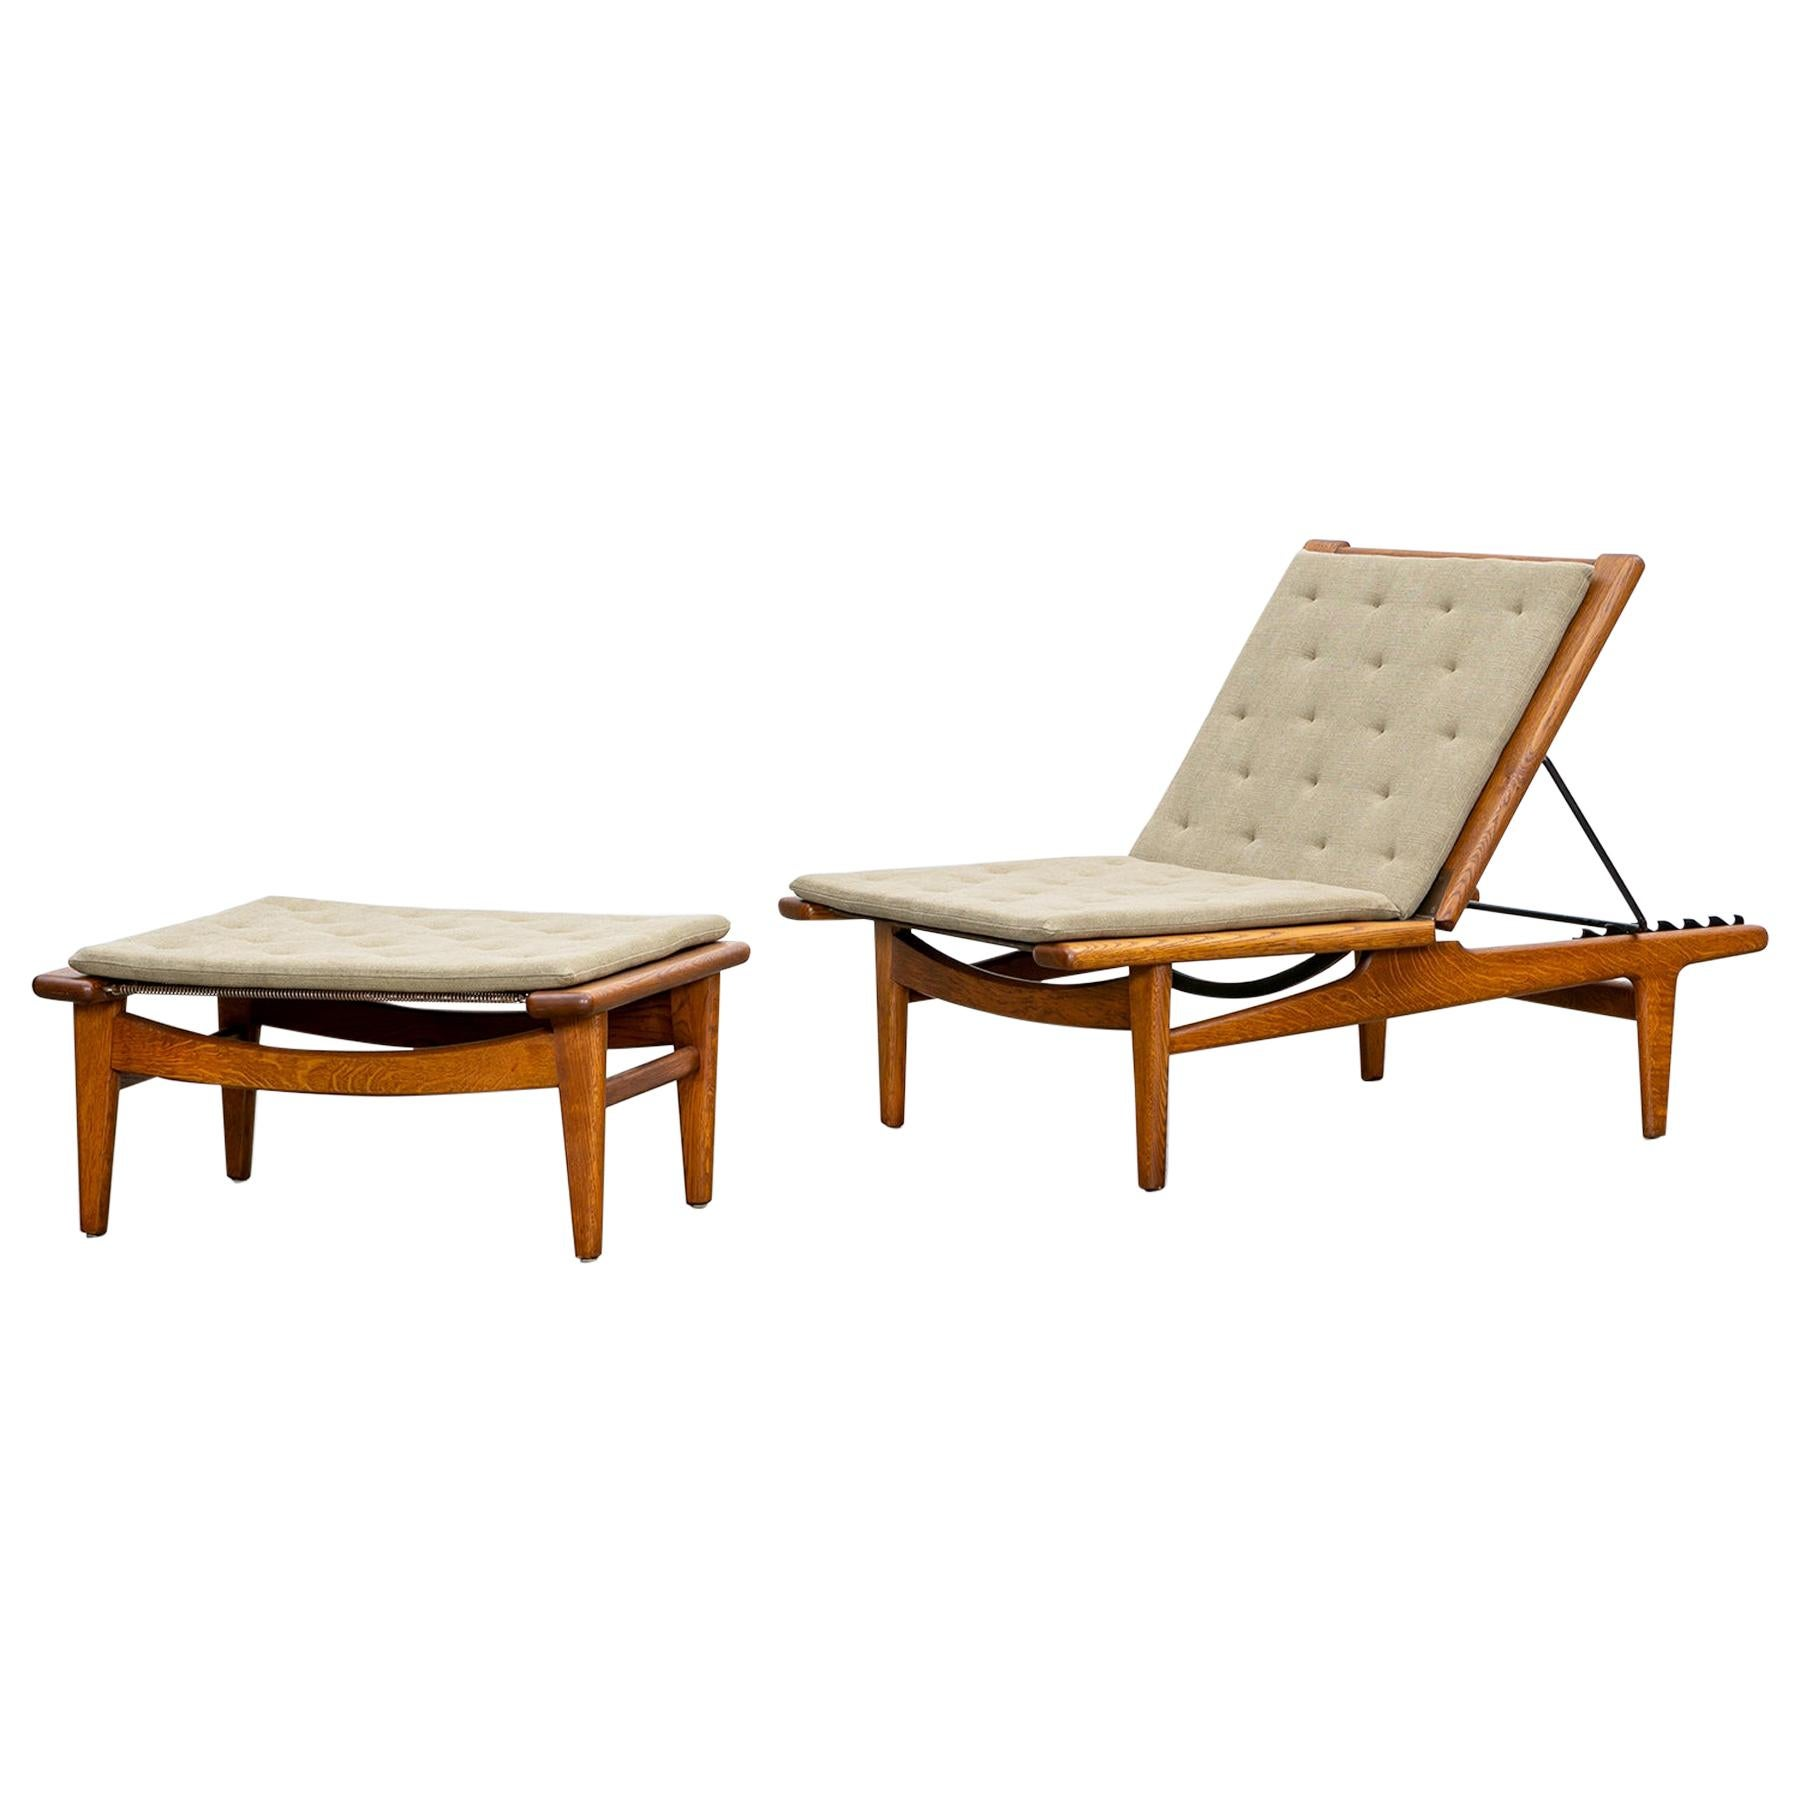 1950s Brown Oak Chaise Lounge with Ottoman by Hans Wegner